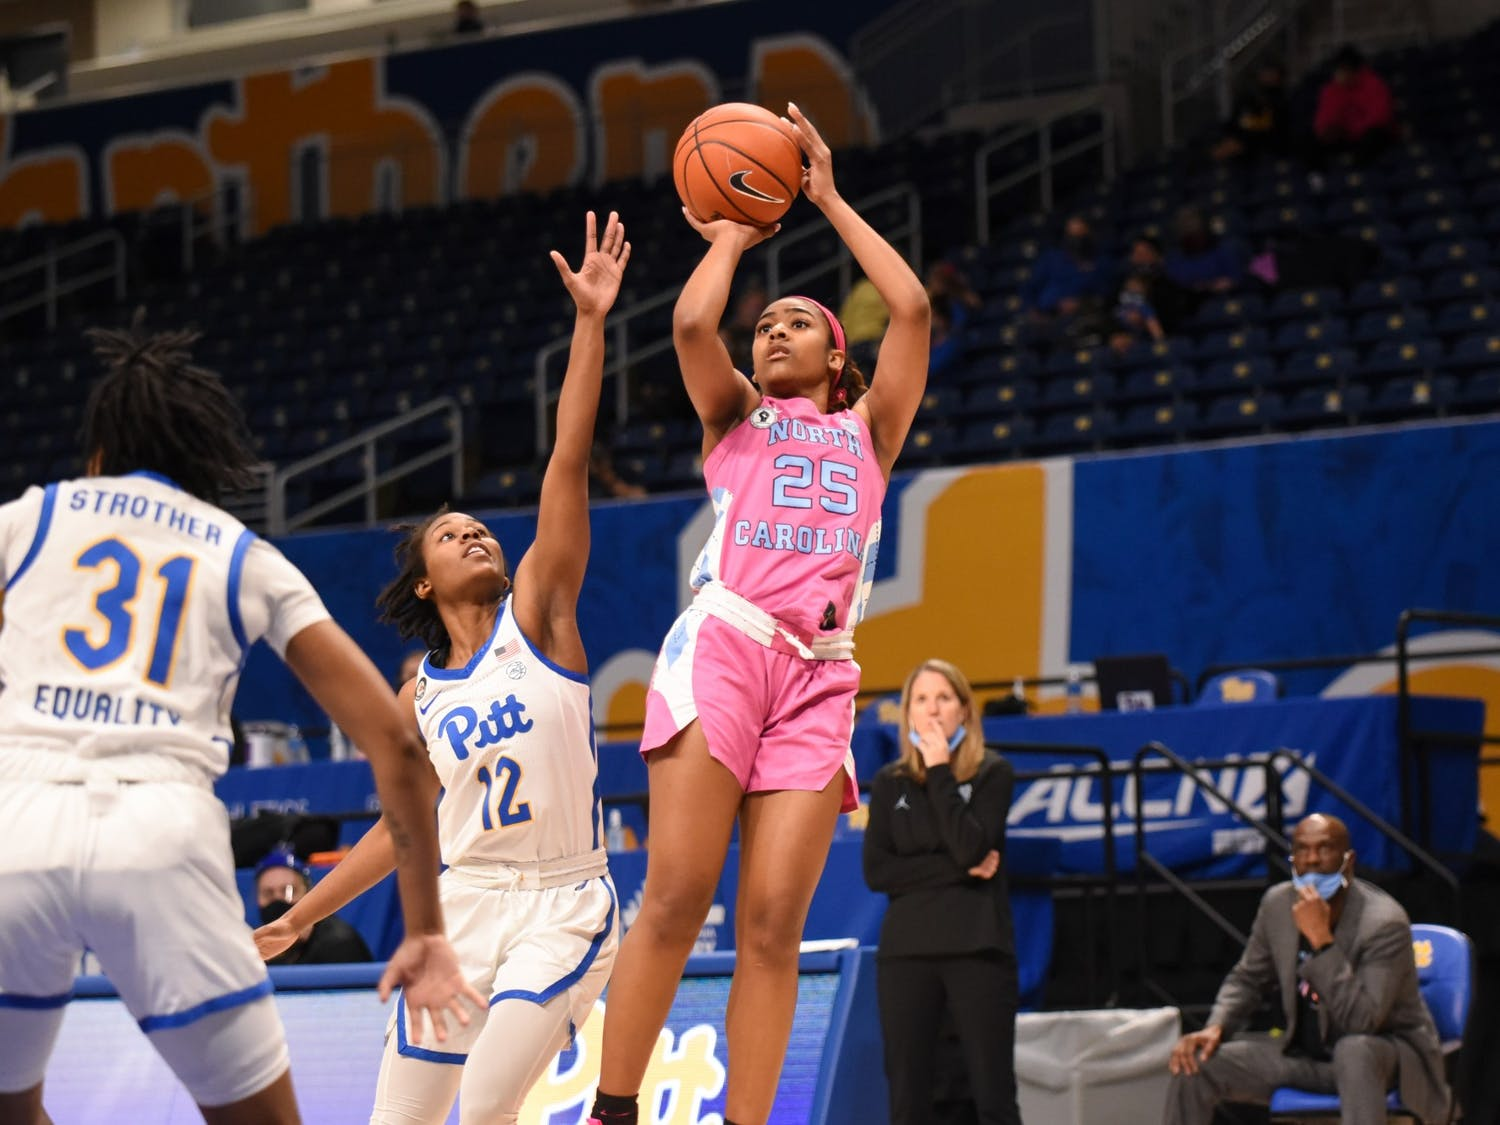 UNC first year guard Deja Kelly (25) attempts to make a shot during a game against Pitt on Sunday, Feb. 14, 2021. UNC beat Pitt 81-72. Photo courtesy of Matthew Hawley.